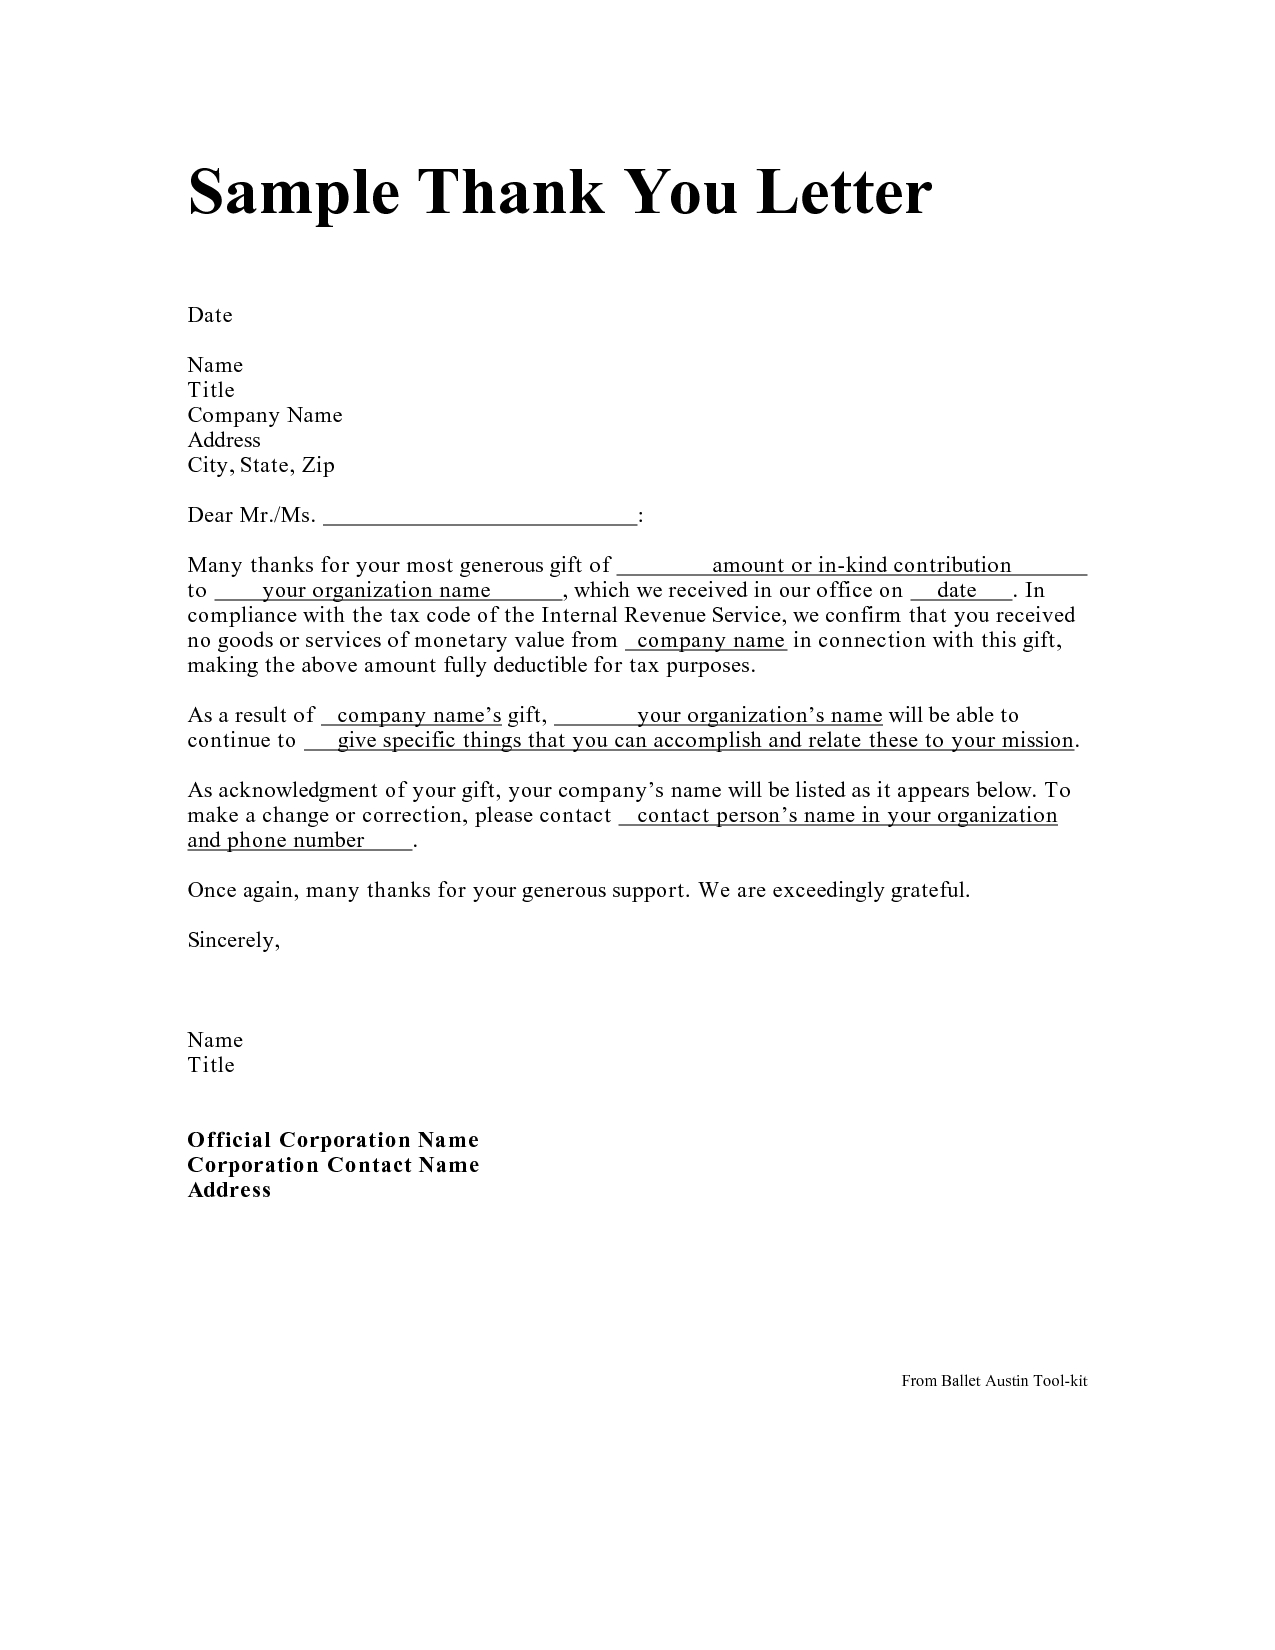 personal letter template Collection-Personal Thank You Letter Personal Thank You Letter Samples Writing Thank You Notes 7-t